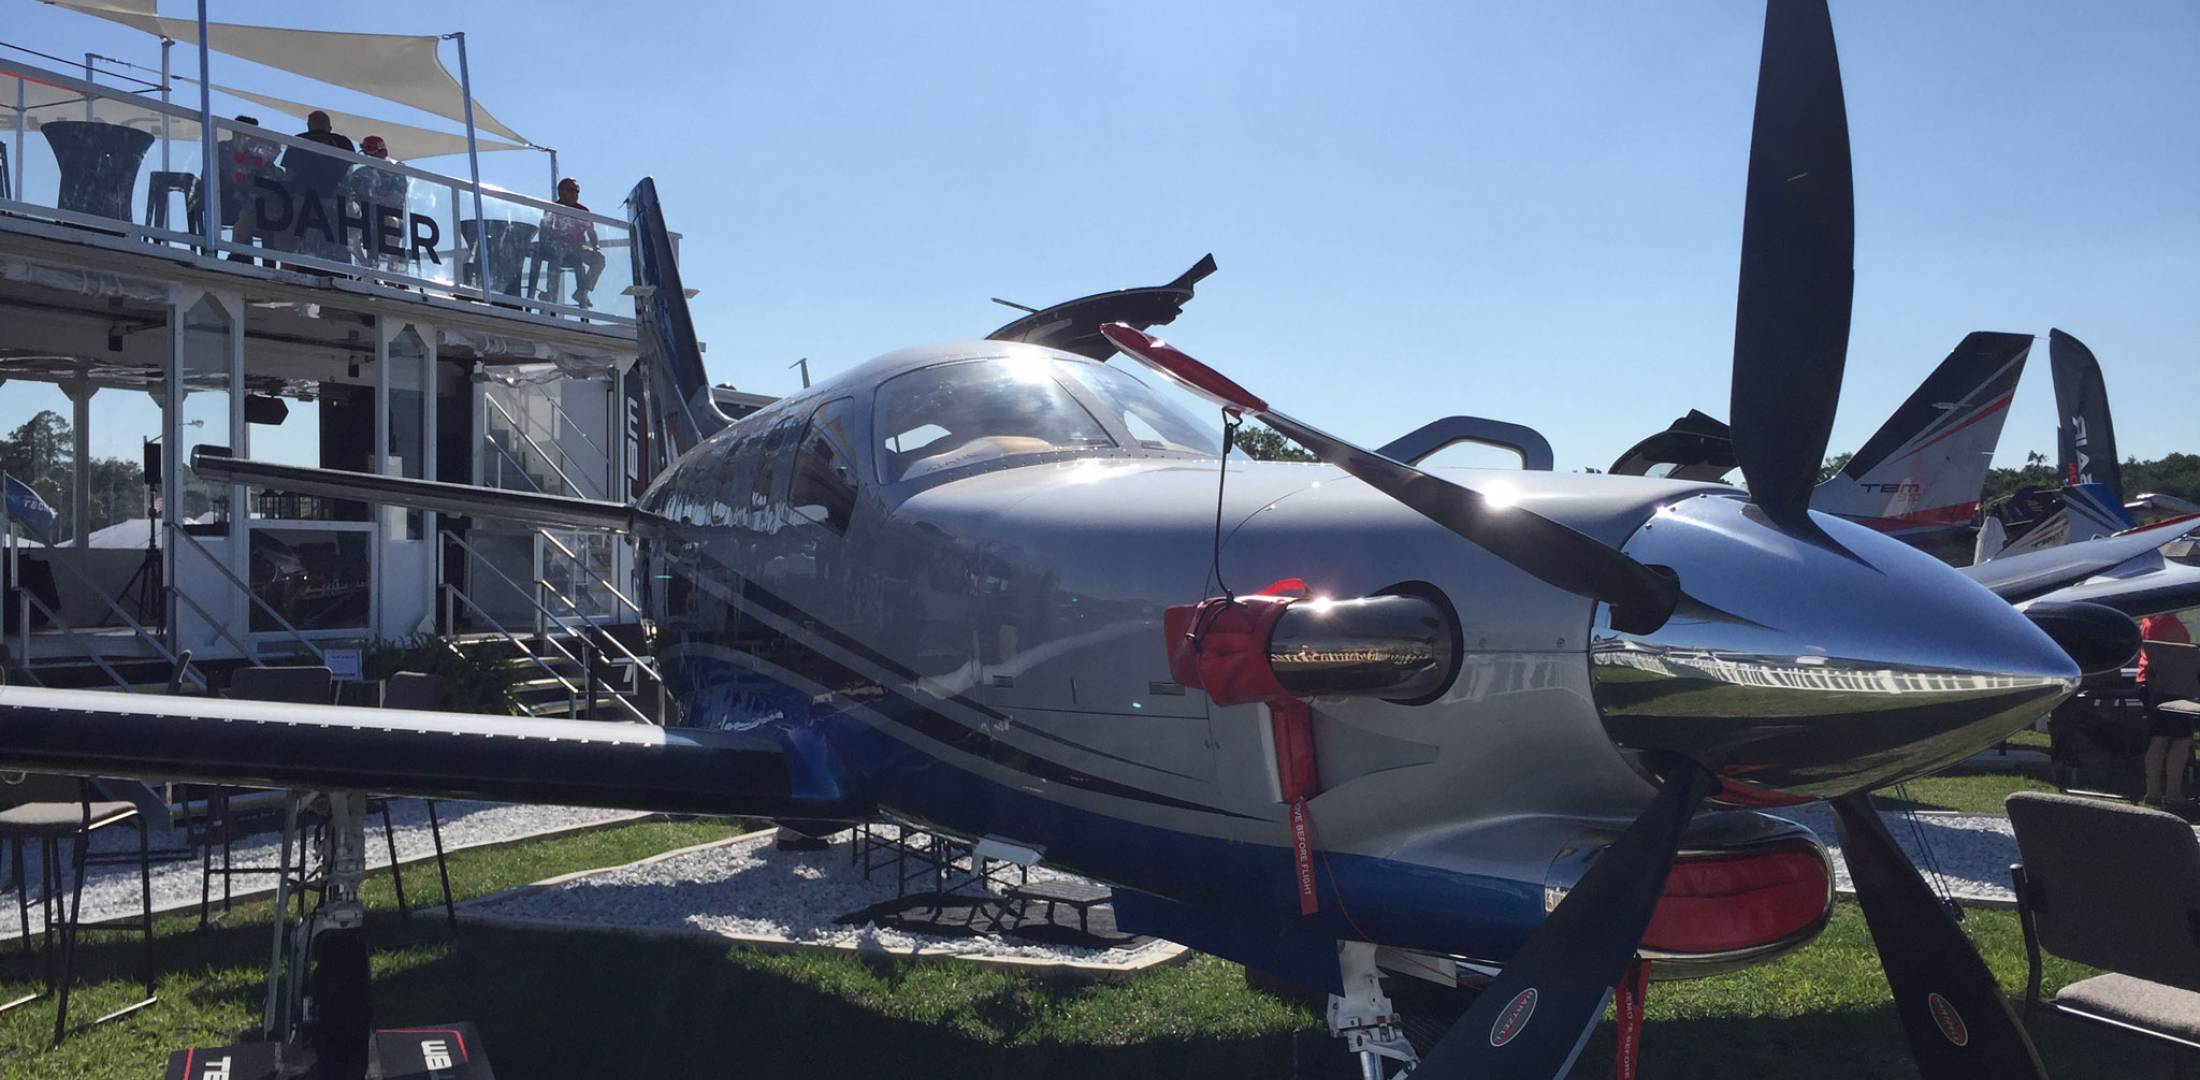 TBM 930 on display